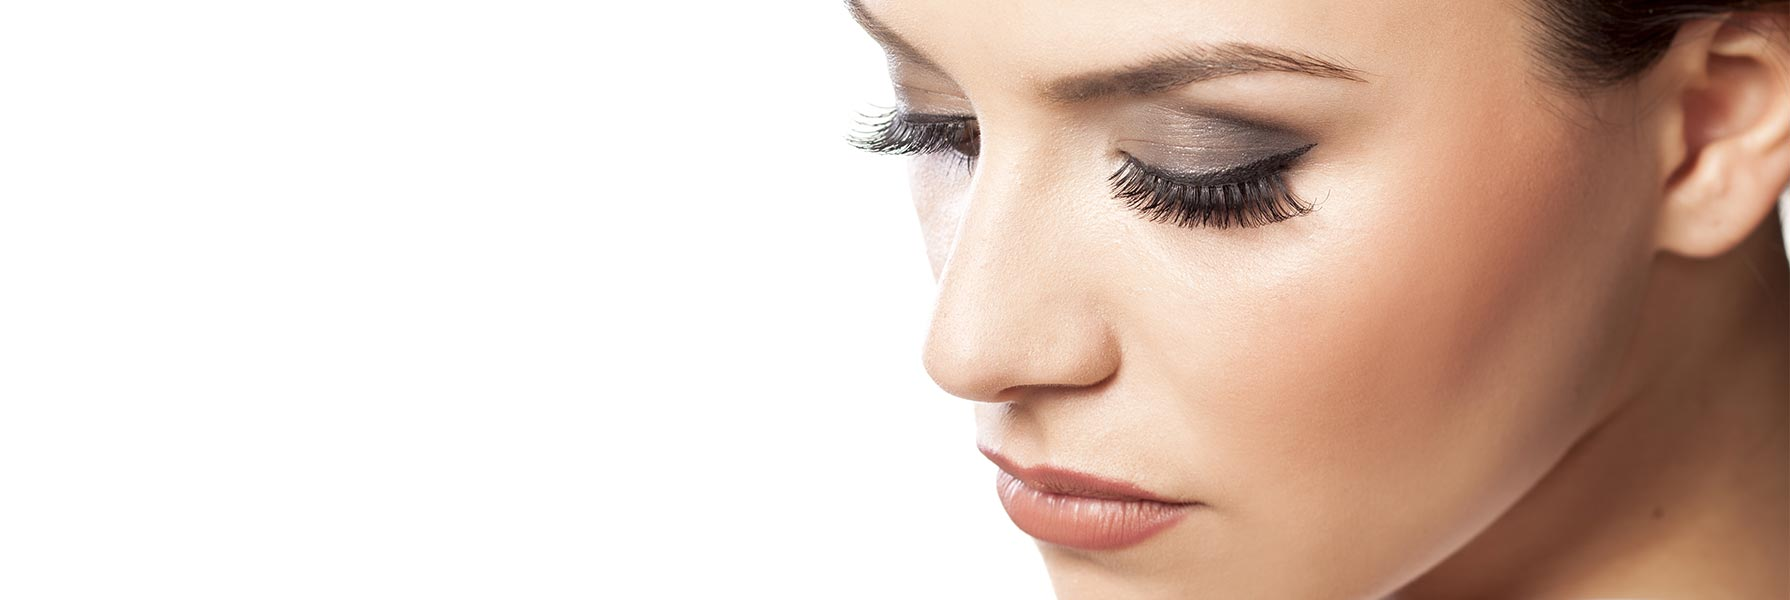 Eyelid Surgery | Blepharoplasty | Costs & Recovery Details | Sydney